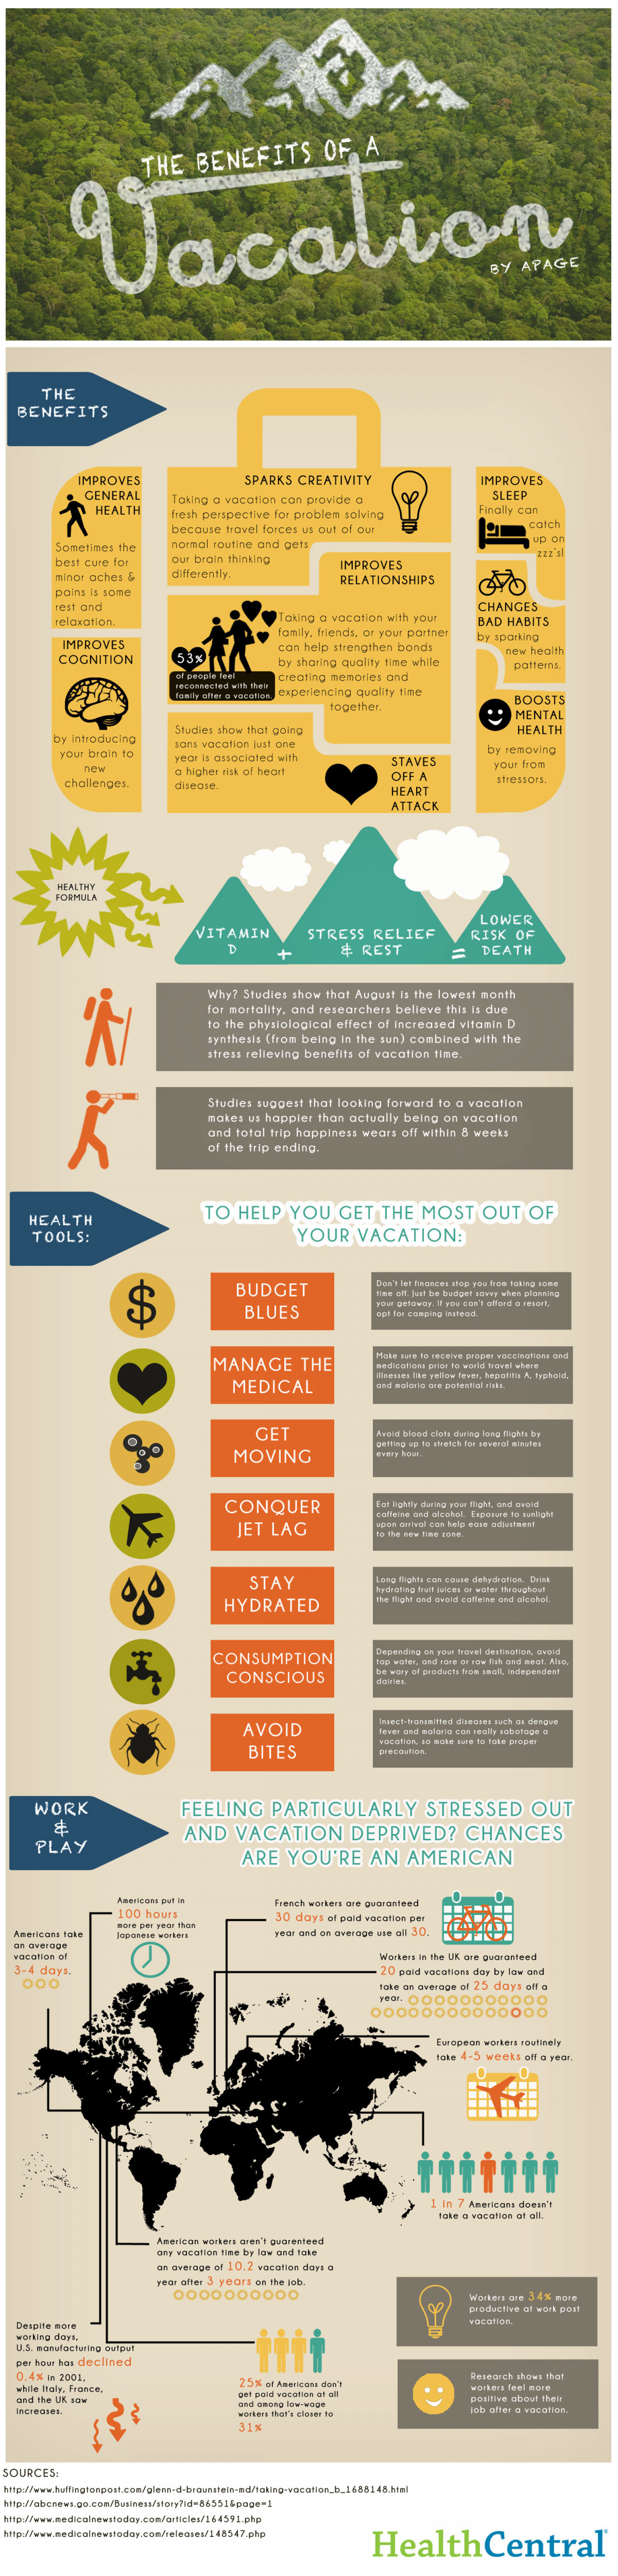 The Benefits of a Vacation  Infographic